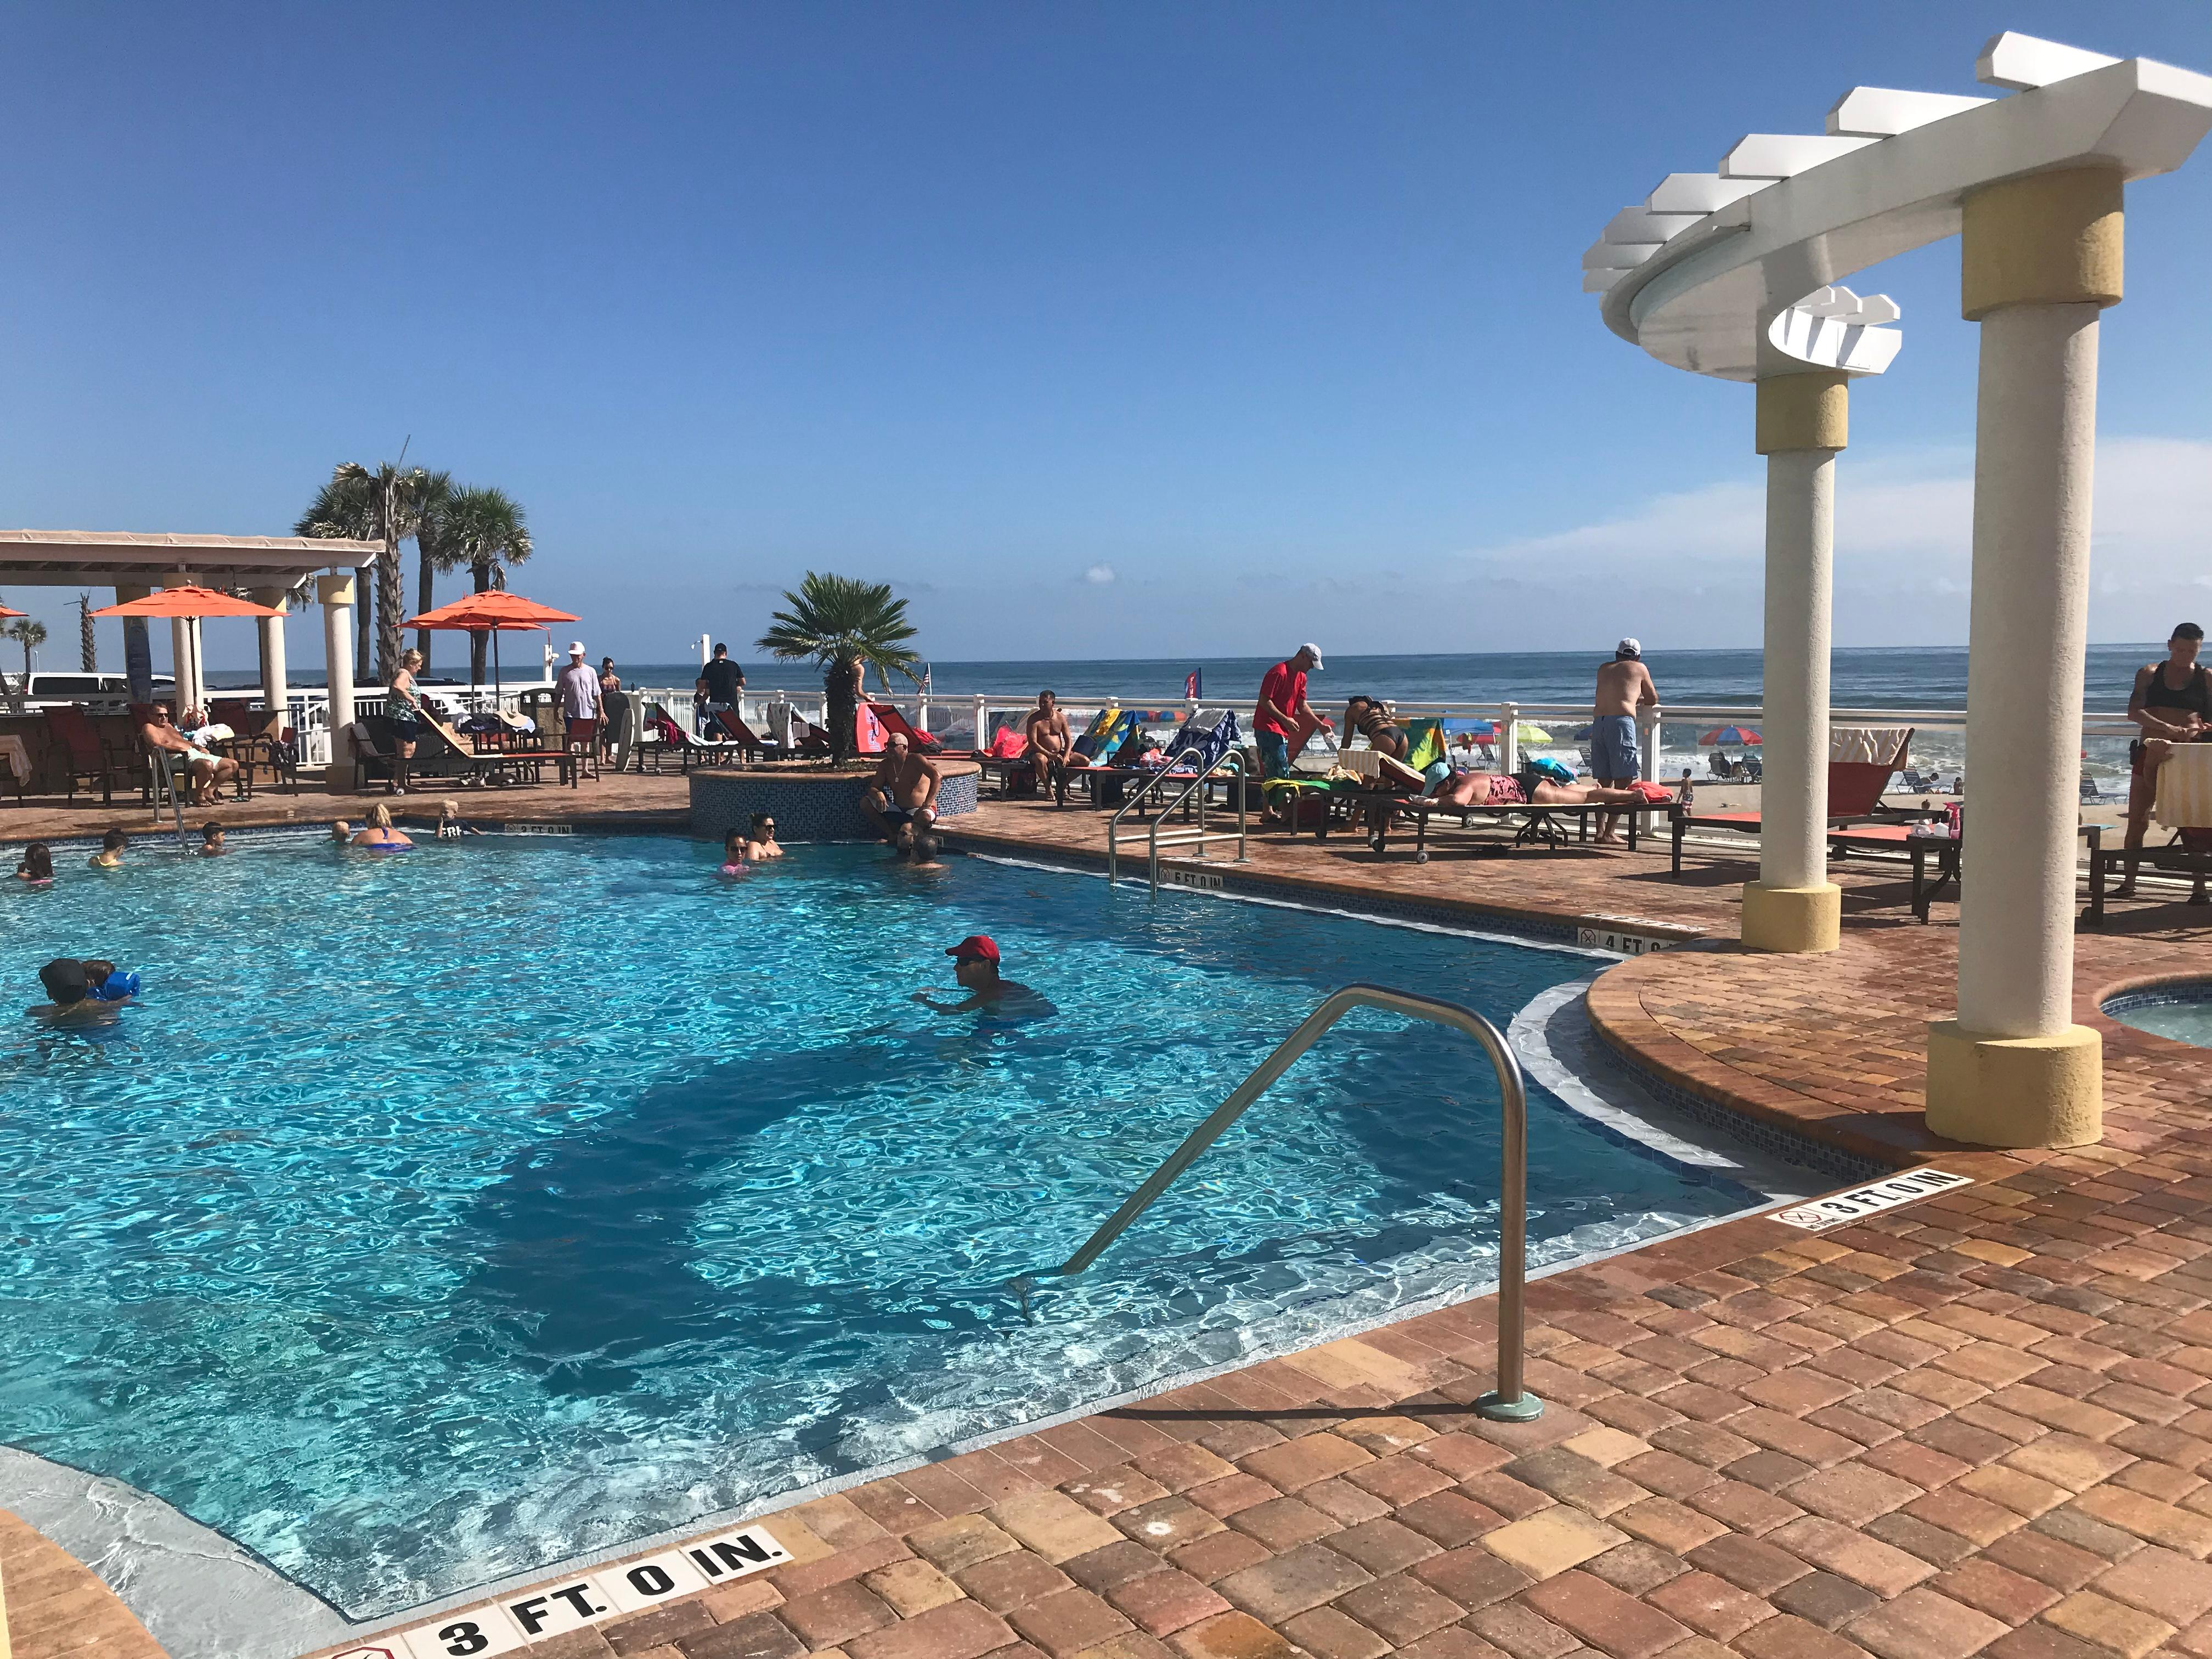 everything was perfect beautiful and very accommodating the price was really reasonable for the hilton wish we could of stayed longer xxxxxxxx - Hilton Garden Inn Daytona Beach Oceanfront